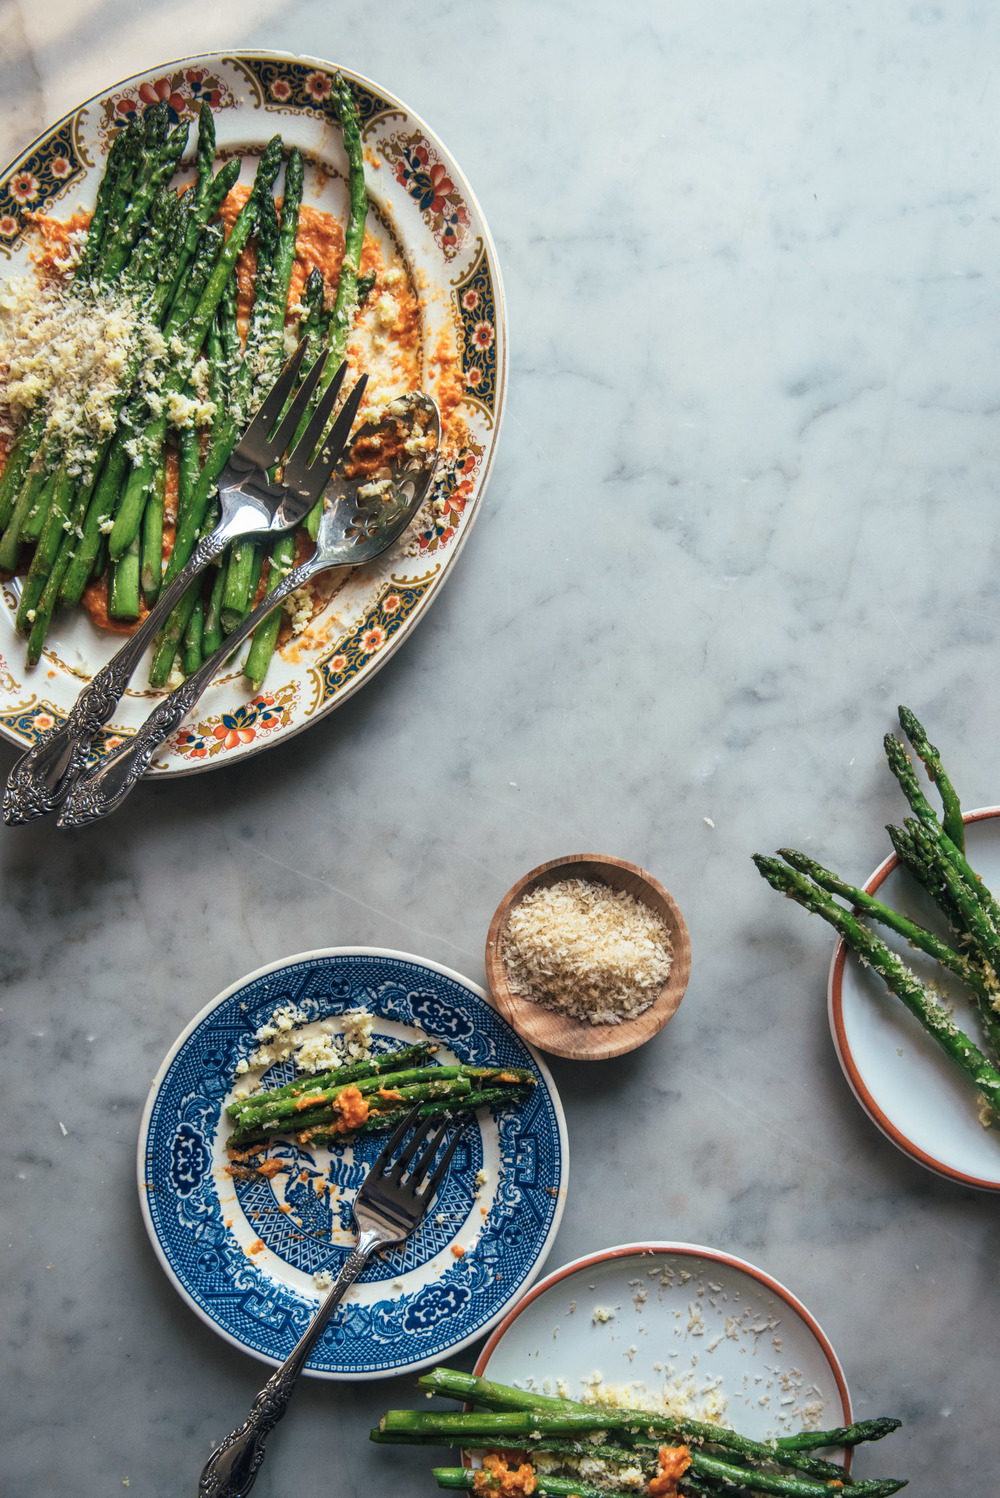 Pan Fried Asparagus with Romesco Sauce